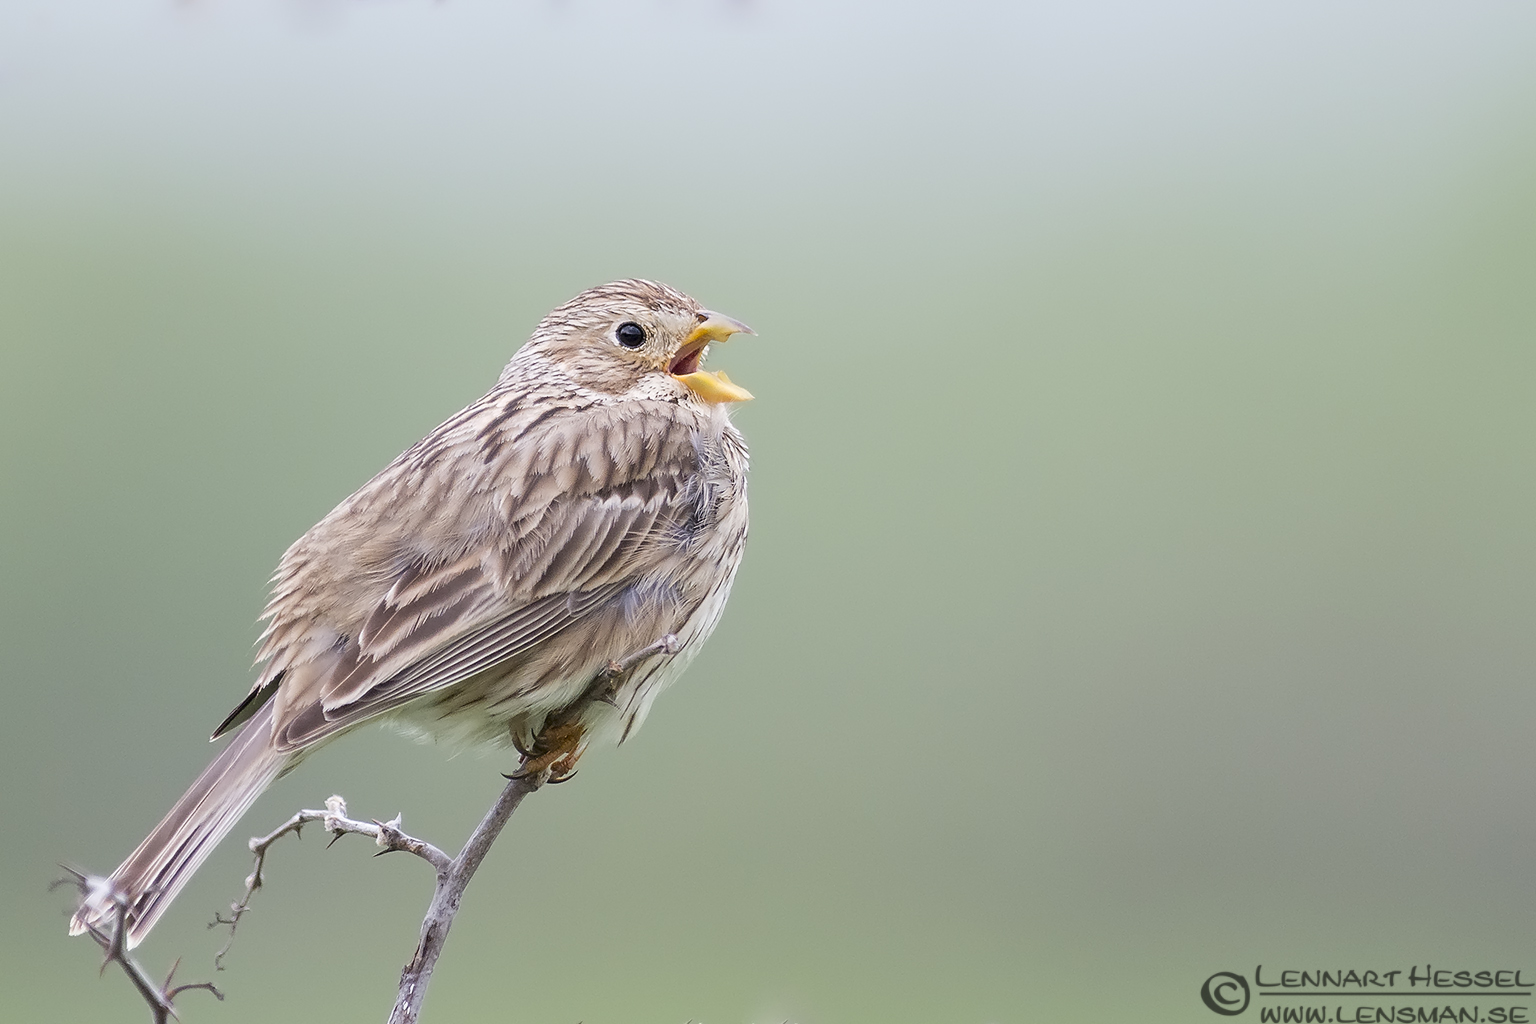 Singing Corn Bunting in Bulgaria